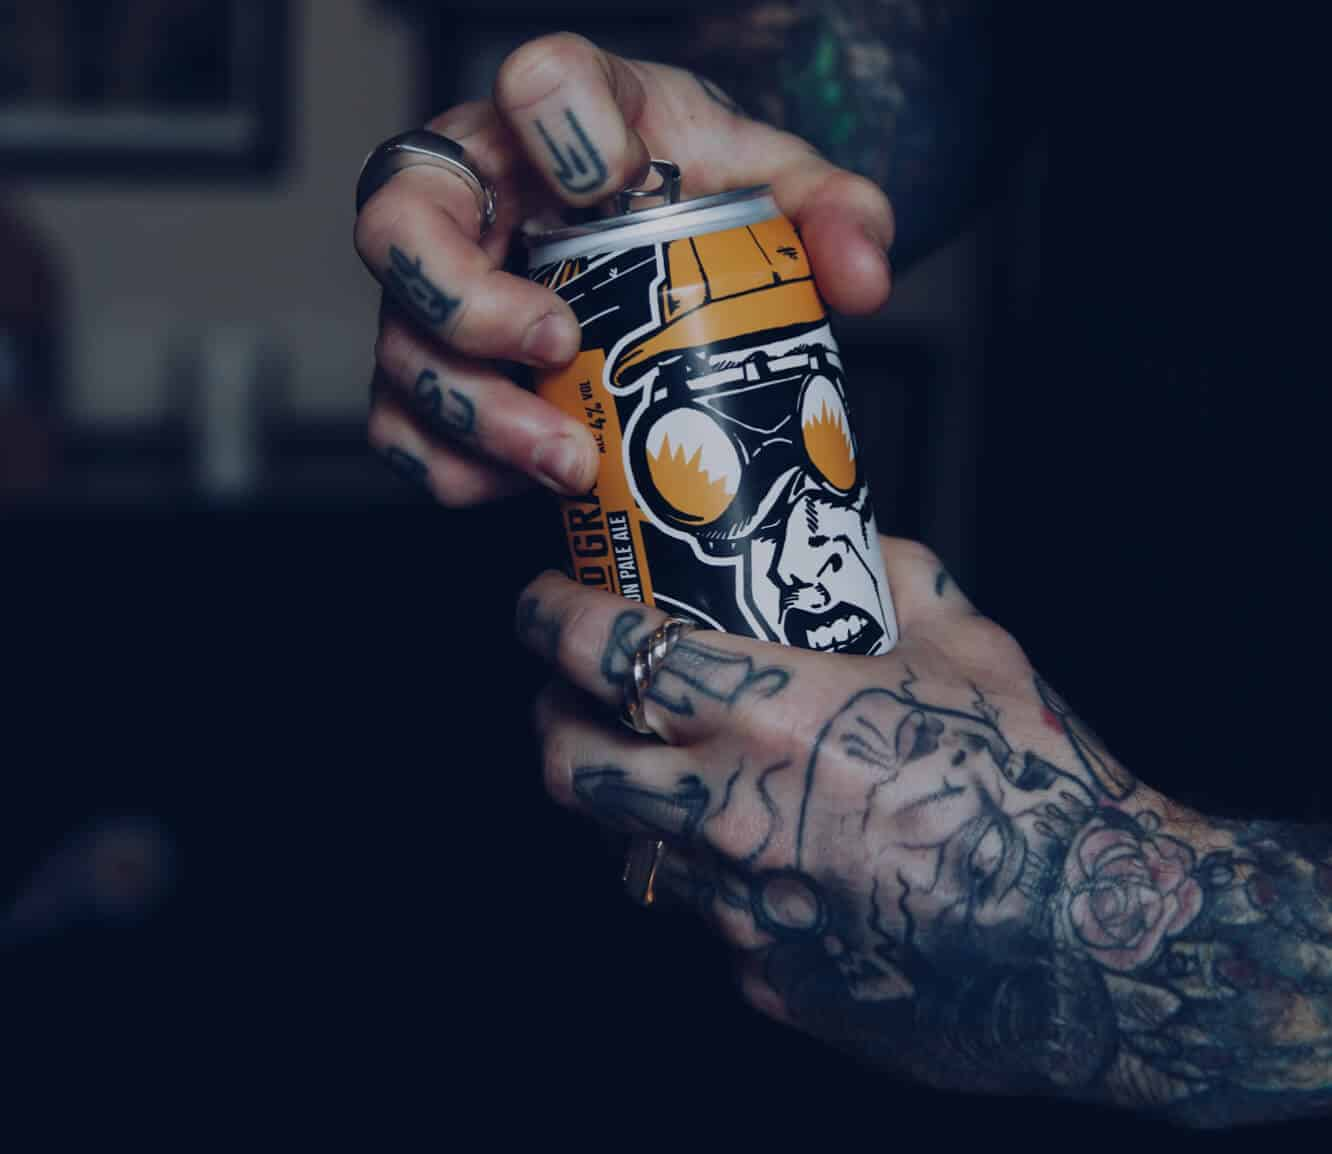 Tattooed hands opening a can of Hard Graft session pale ale